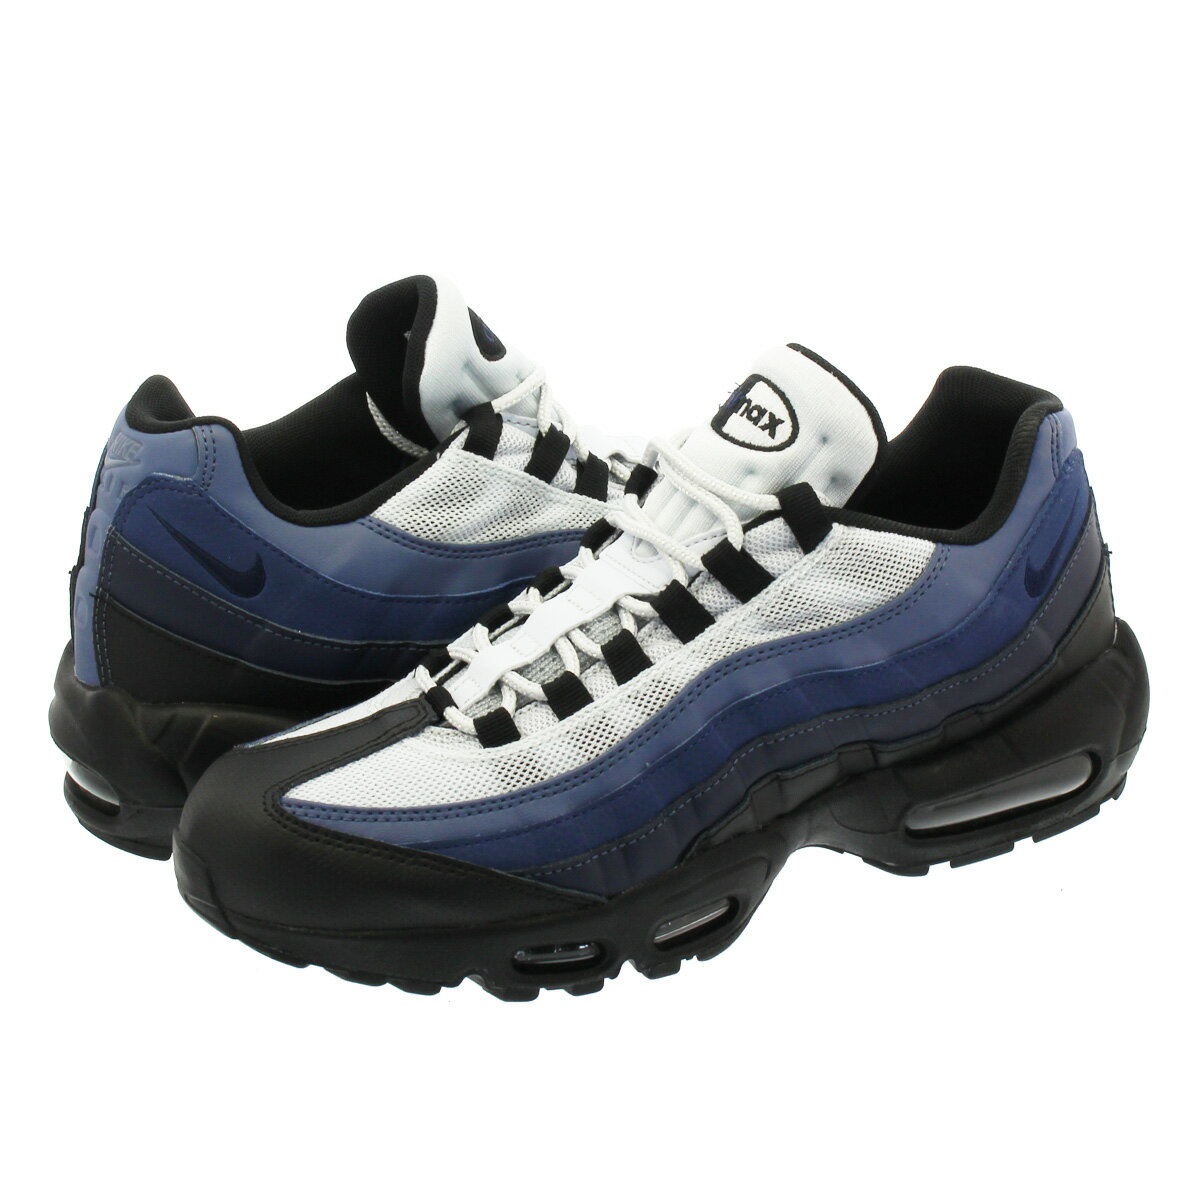 NIKE AIR MAX 95 ESSENTIAL ナイキ エア マックス 95 エッセンシャル BLACK/OBSIDIAN/NAVY BLUE/PURE PLATINUM 749766-028